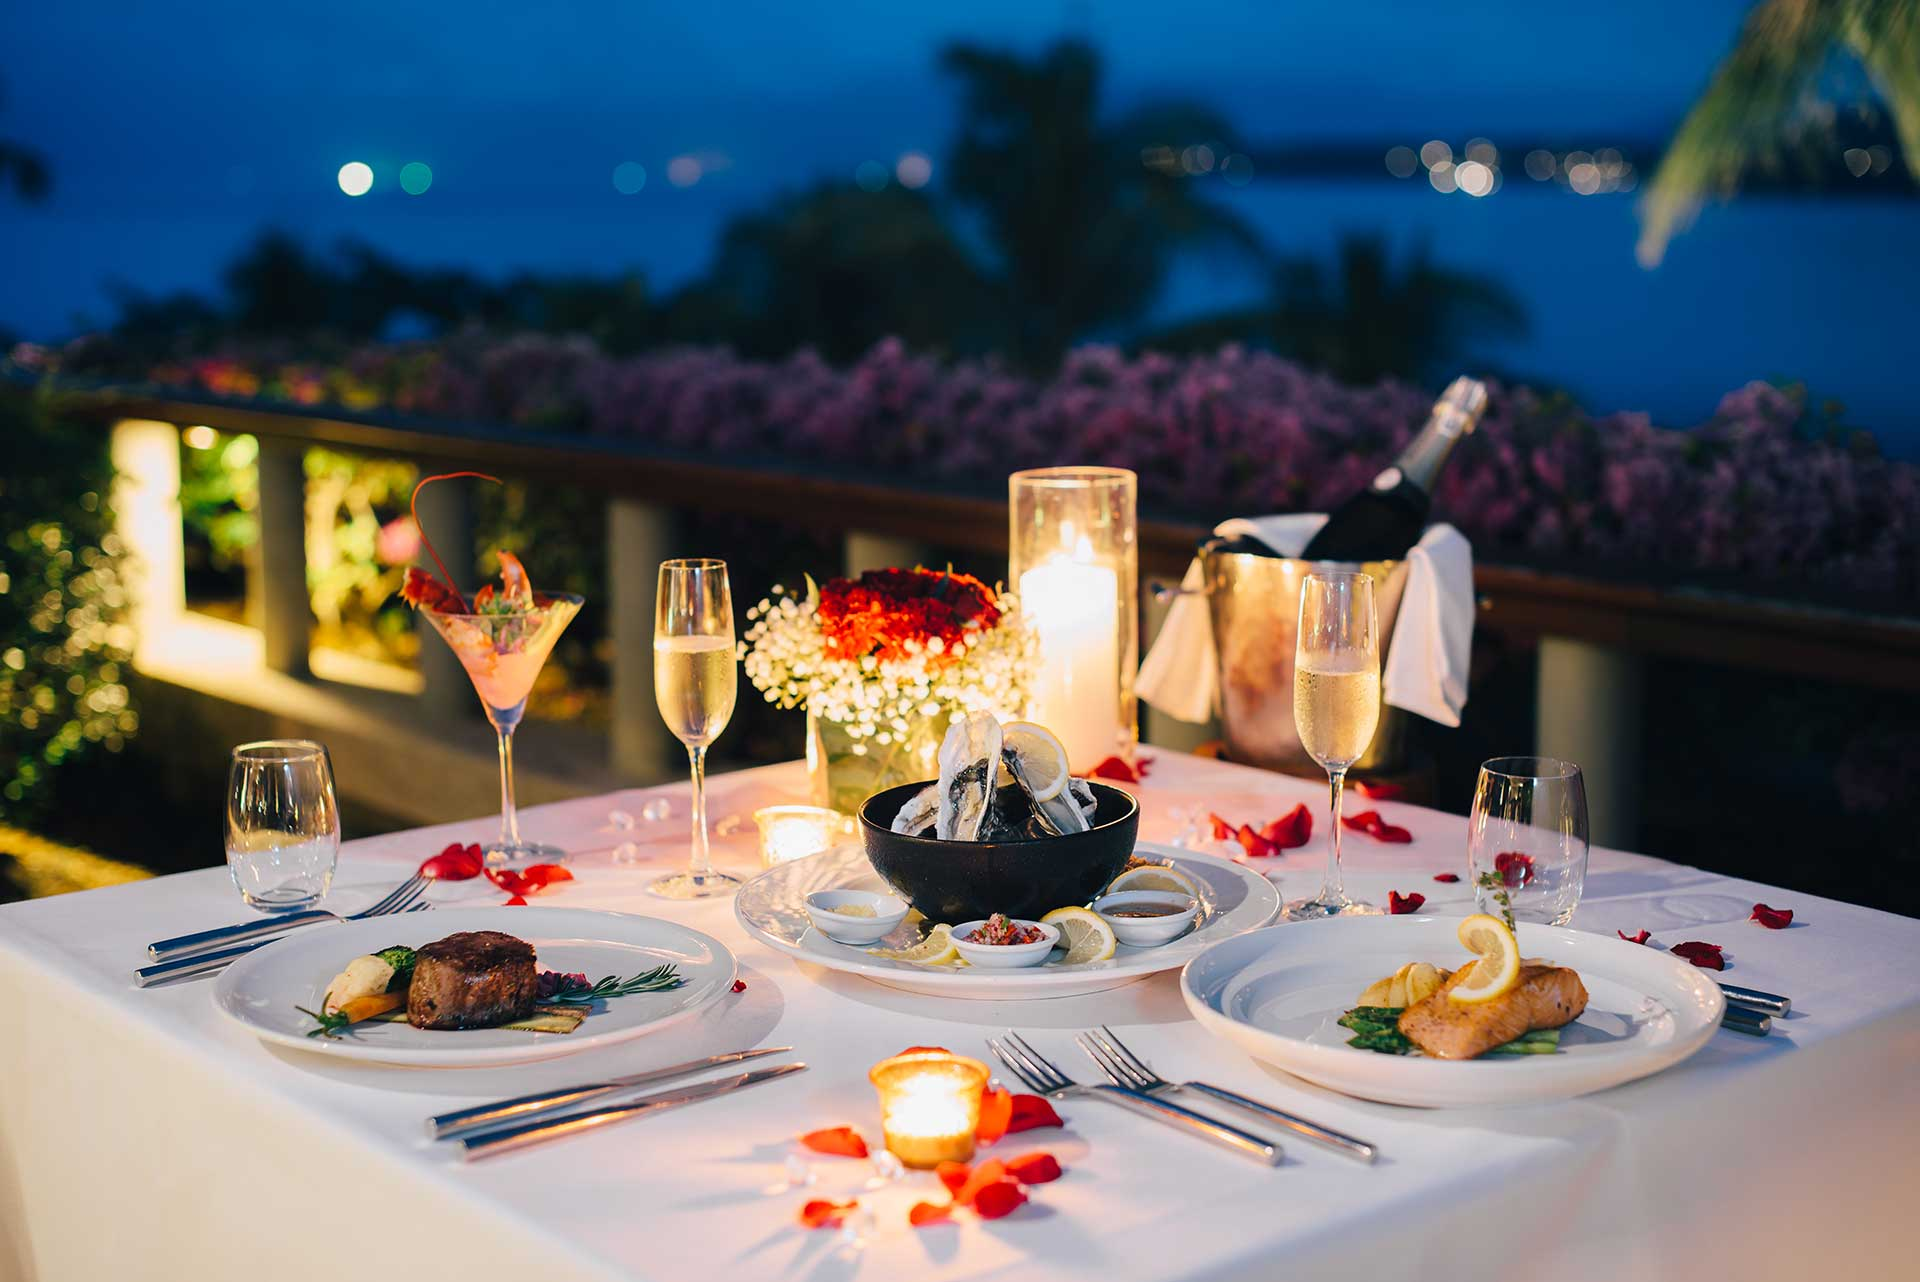 Romantic Table Setting for 2 on the Gulfside